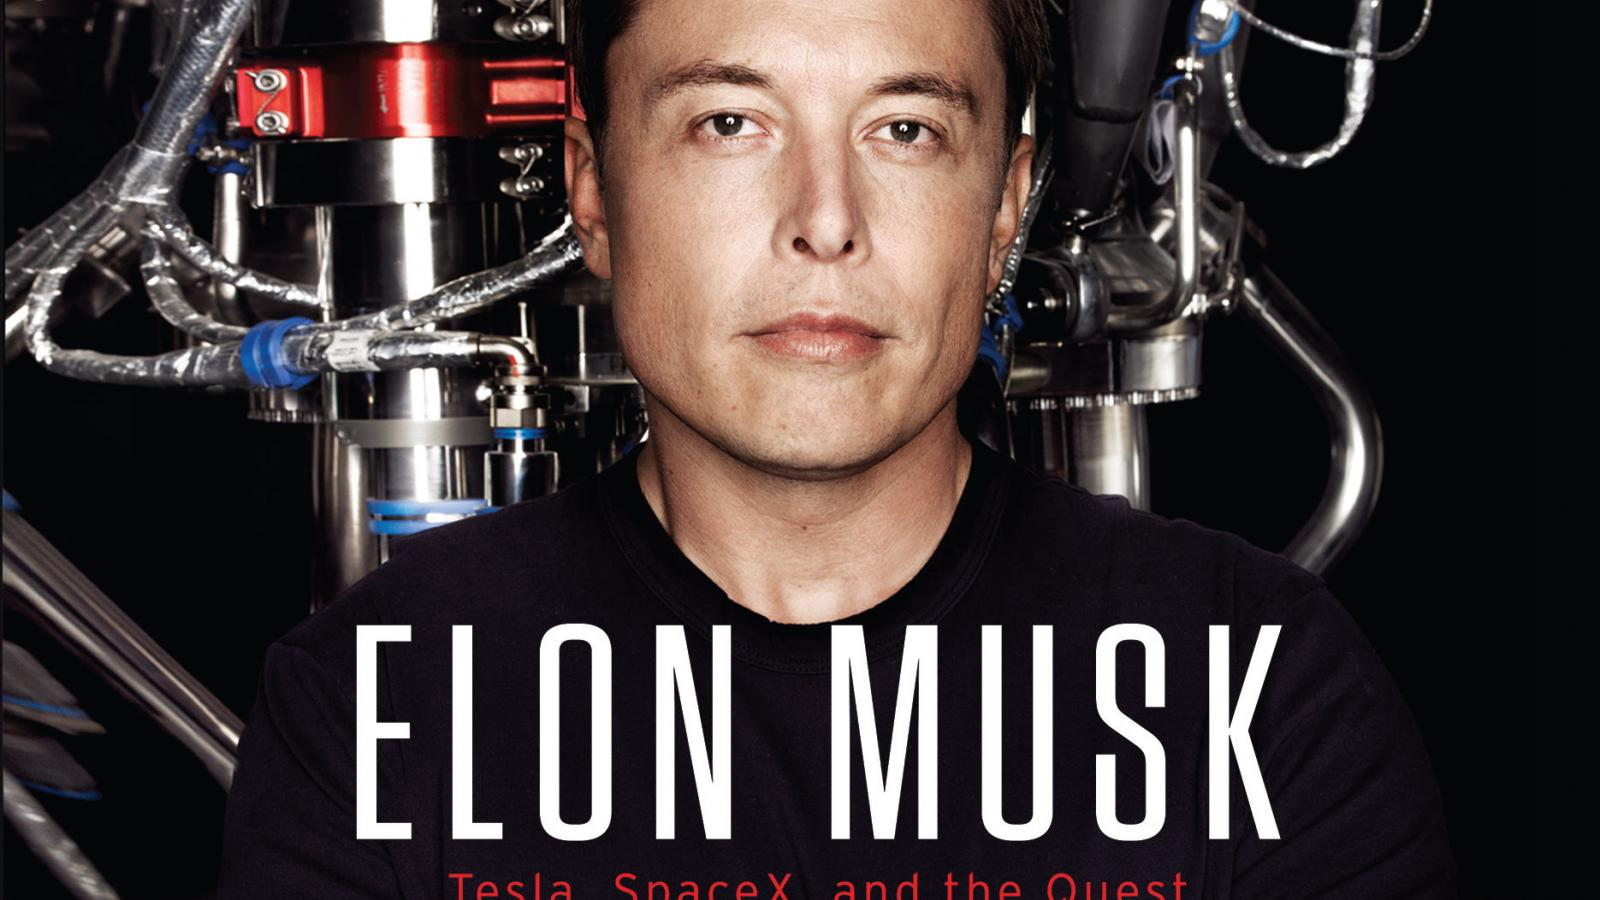 Book Recommendation: Elon Musk: Tesla, SpaceX, and the Quest for a Fantastic Future